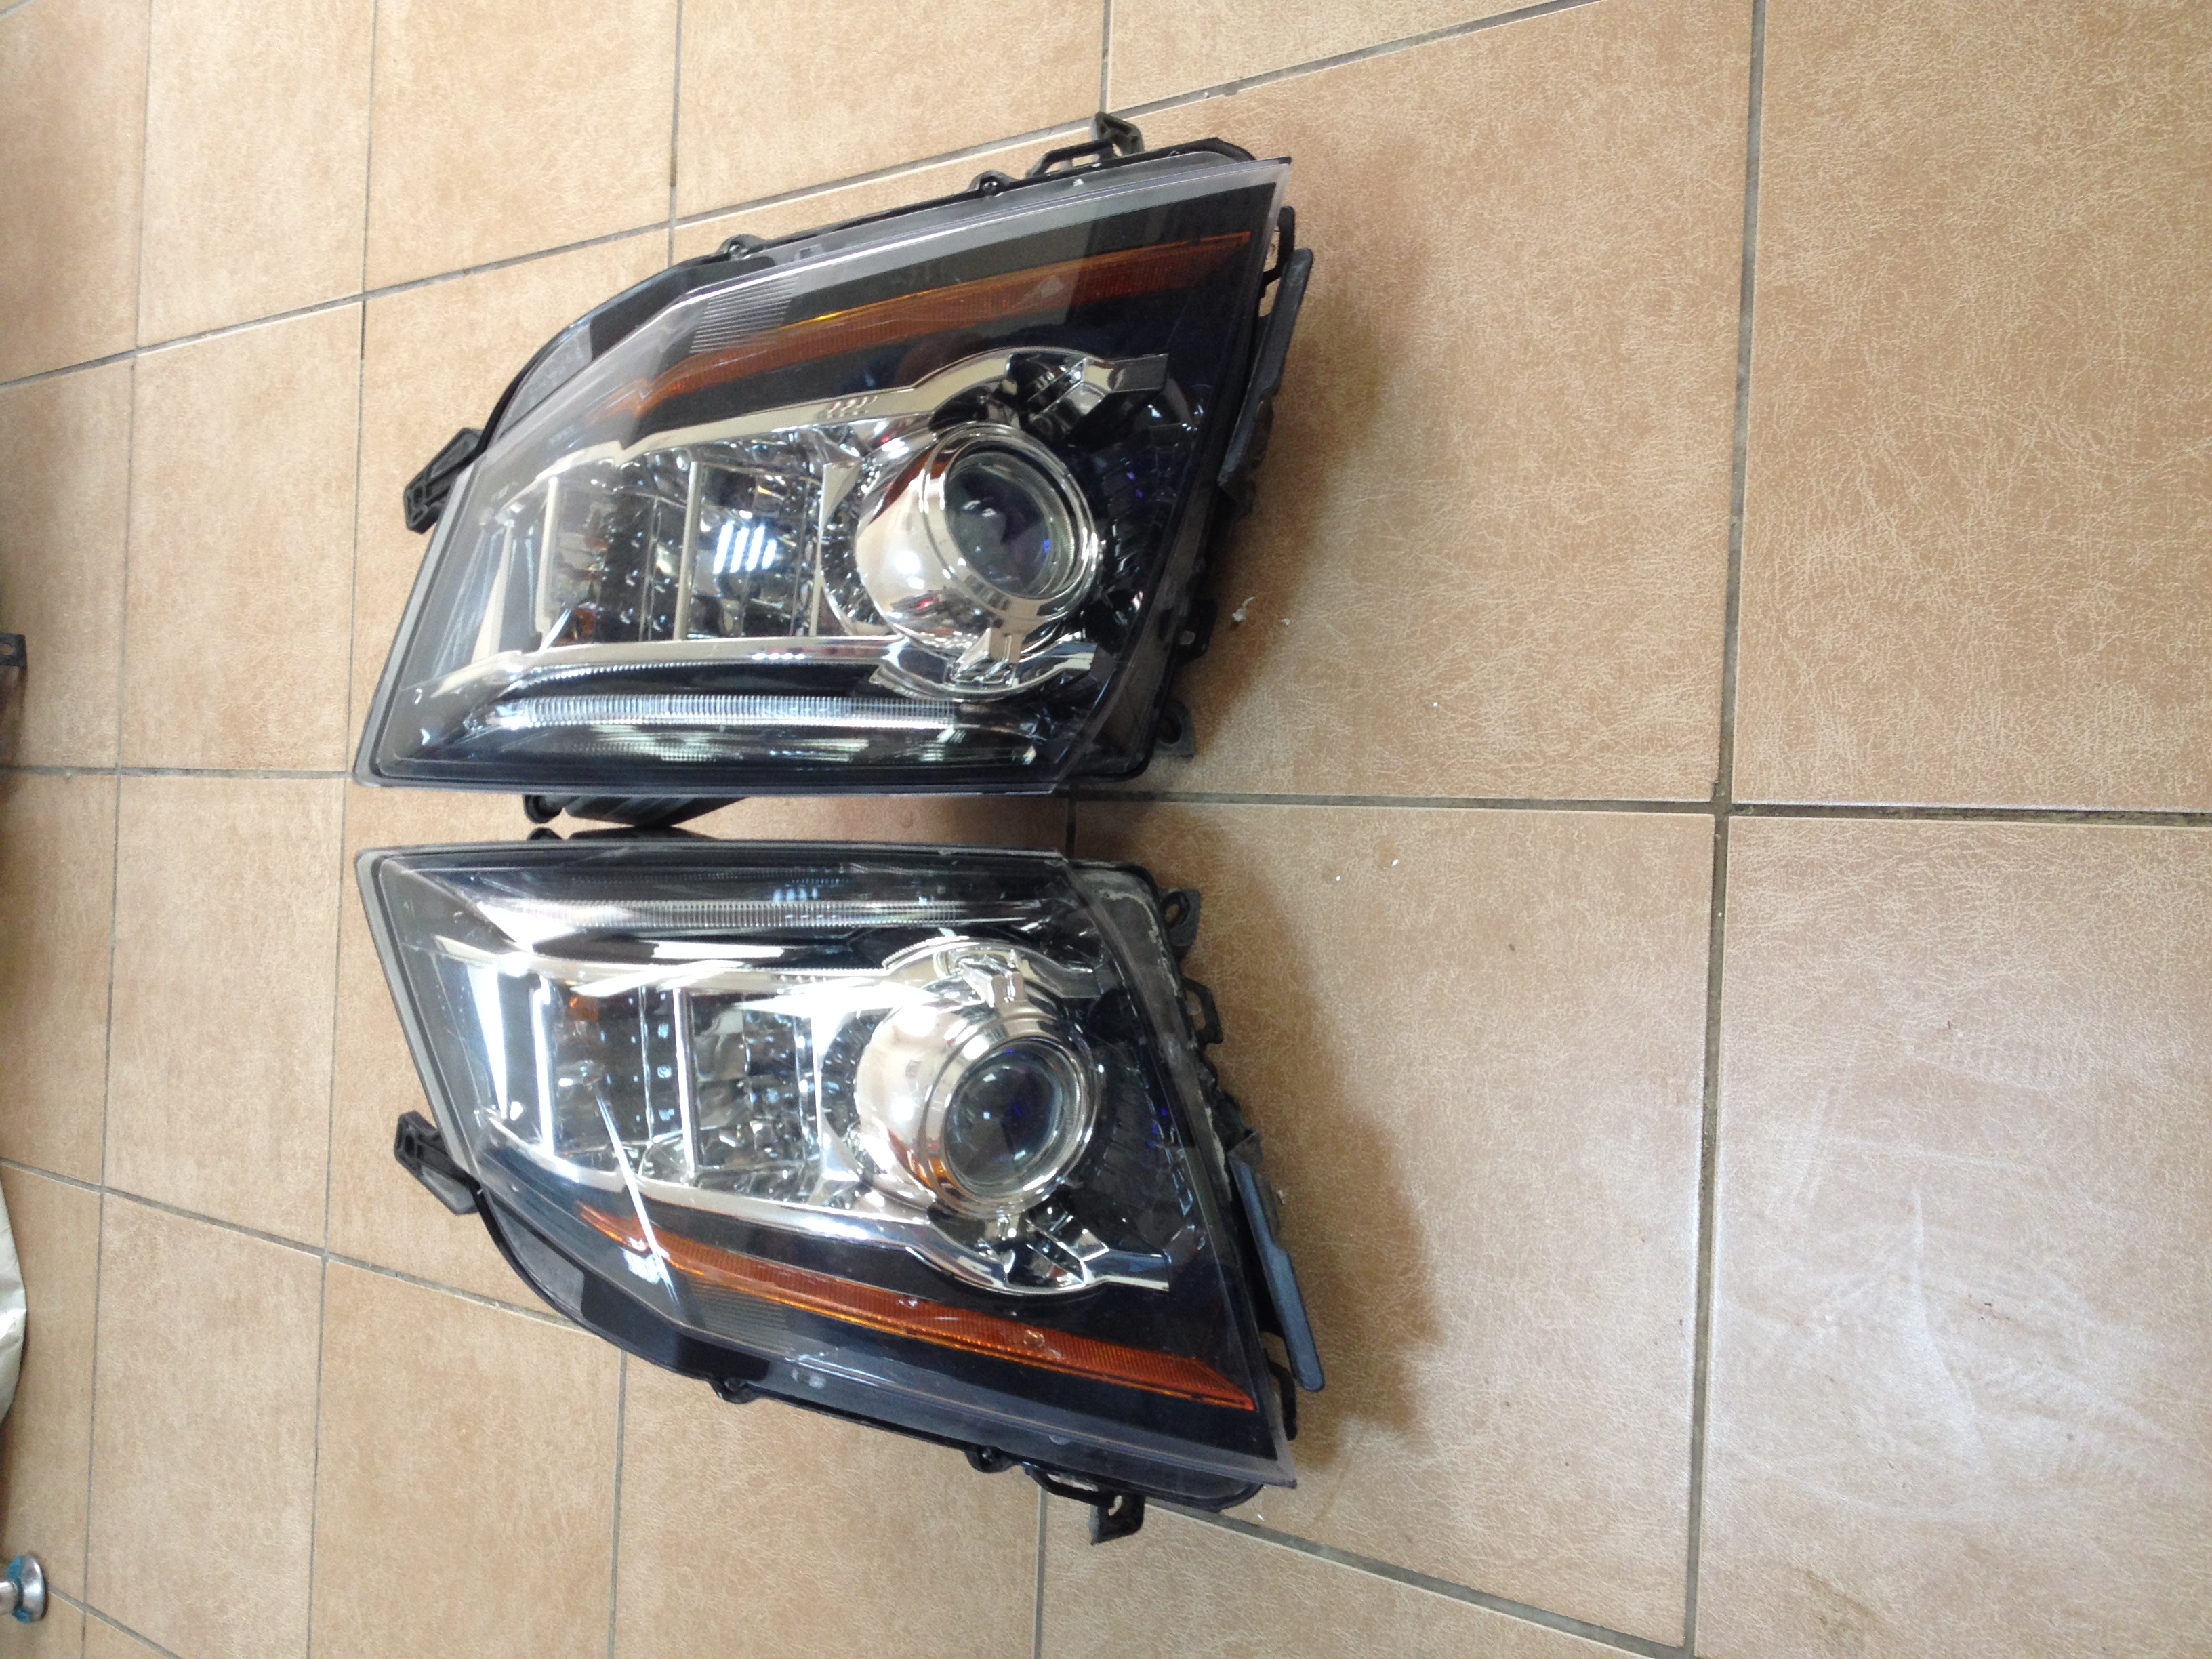 Cts headlights